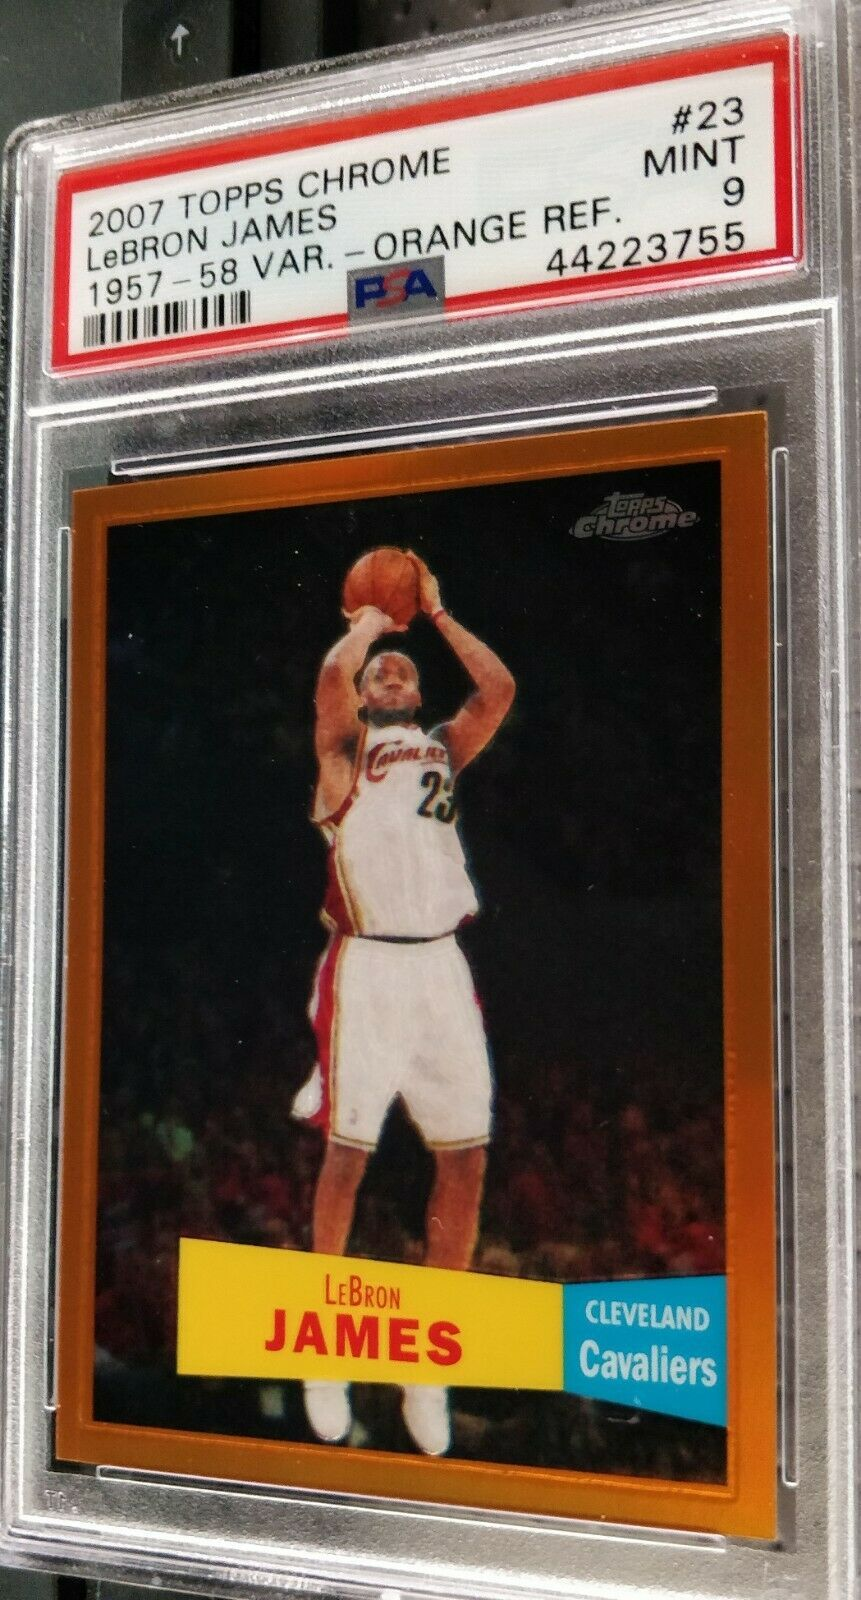 2007-08 Topps Chrome LeBron James Orange Refractor Var PSA 9 Mint #119/199